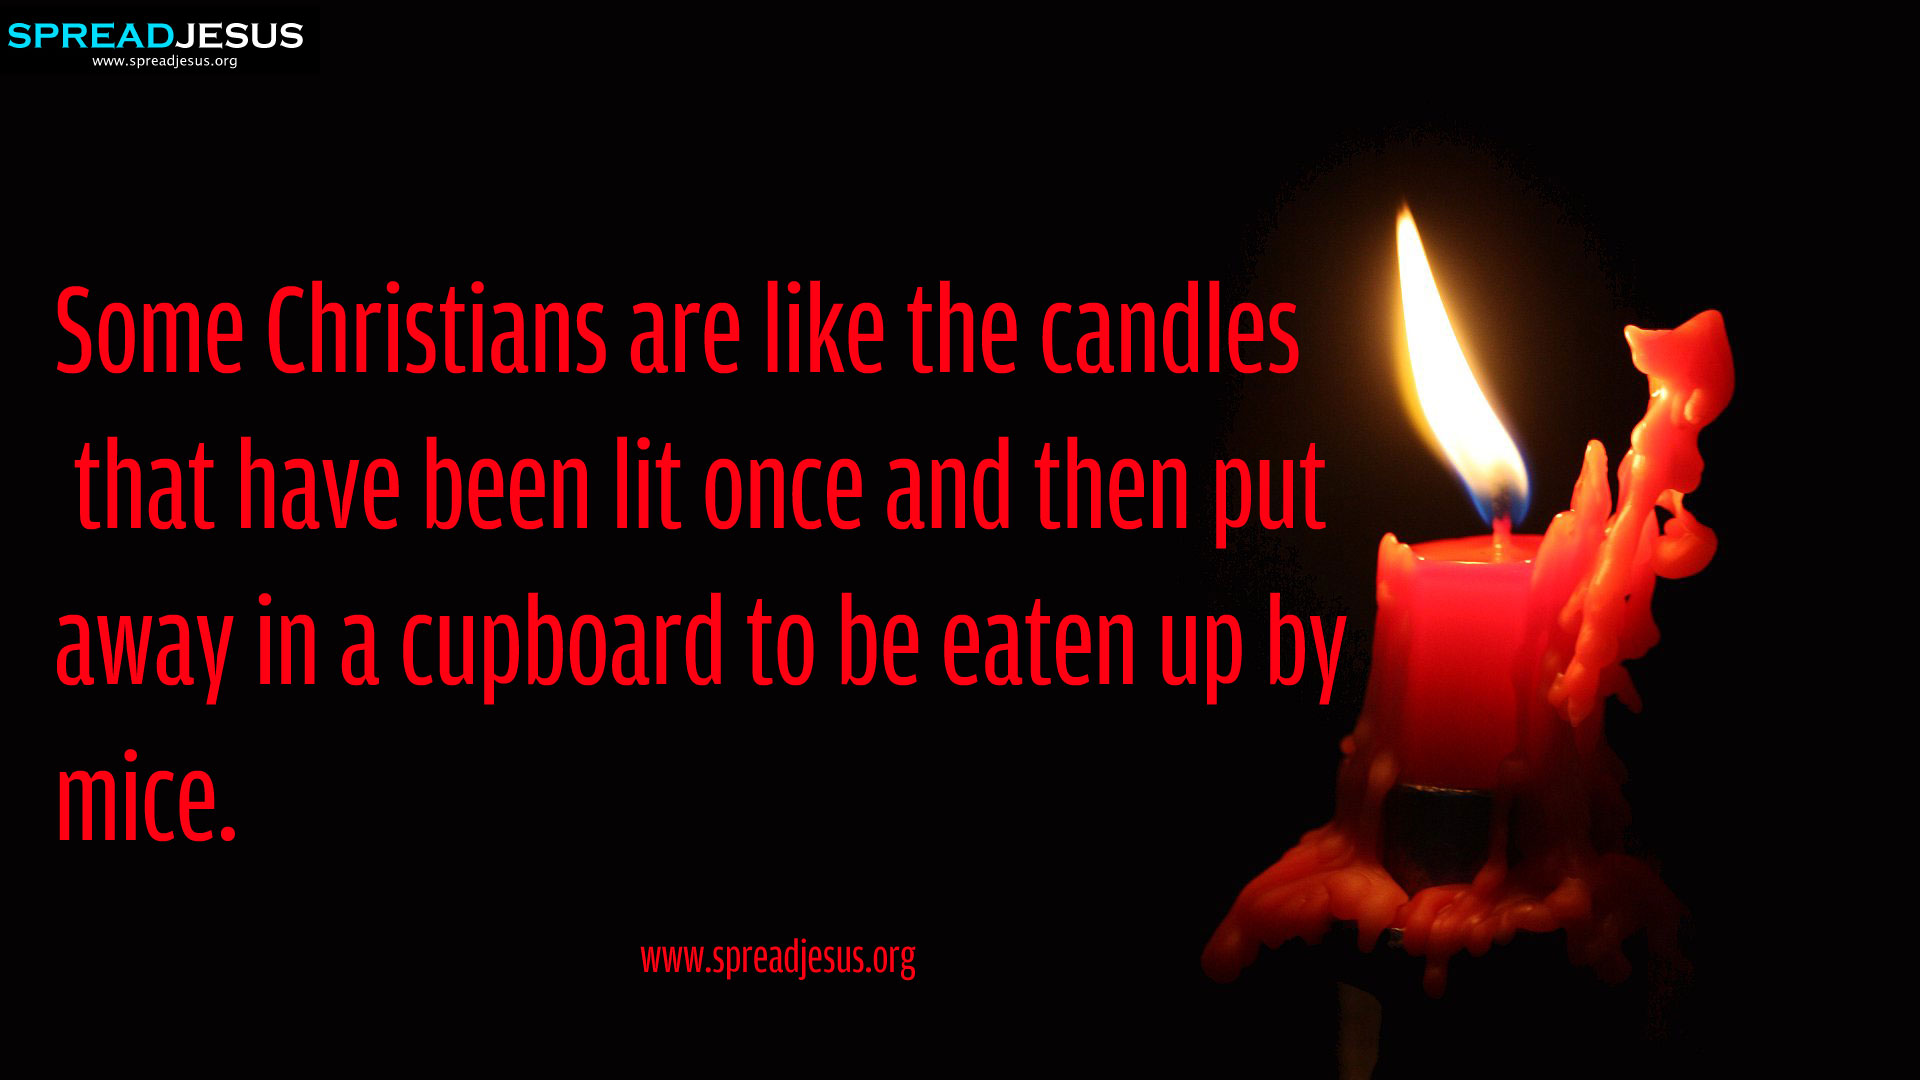 Christians are like the candles